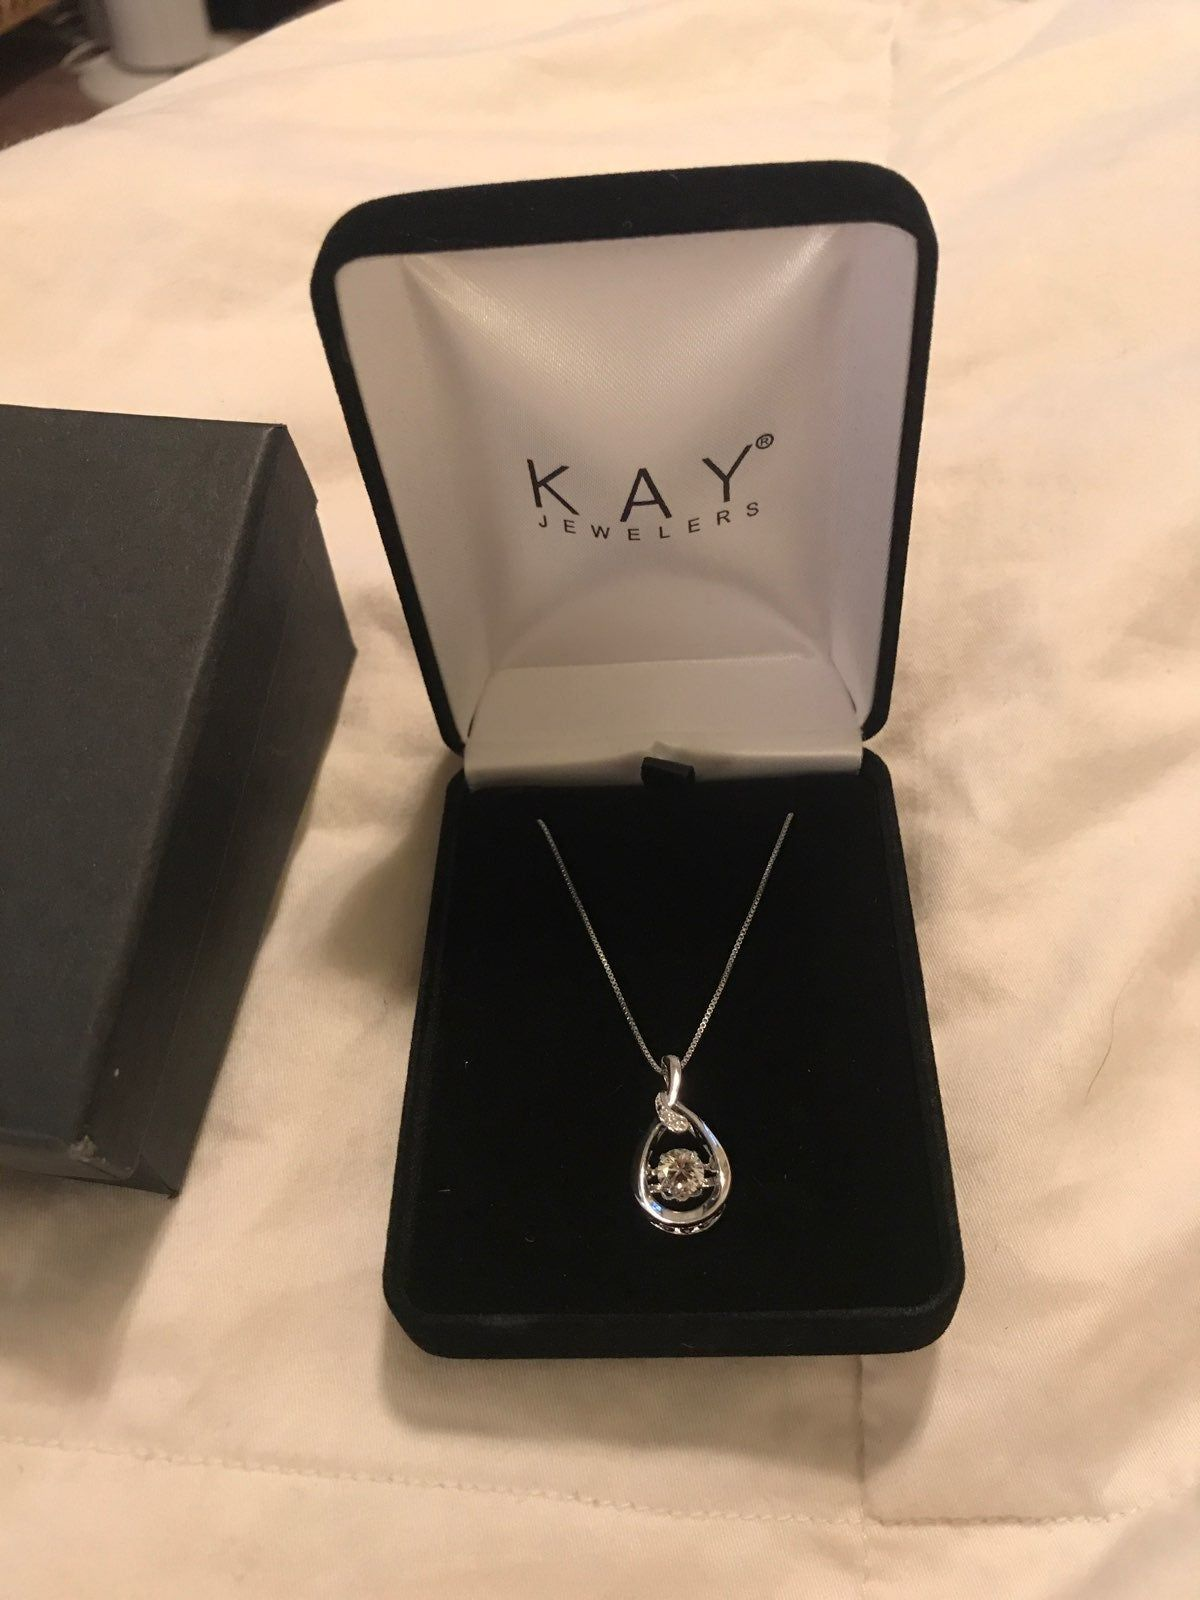 Kay Jeweler Necklace Still In Box With Tags And Never Worn Paid 80 For It Kay Jewelers Necklaces Kay Jewelers Necklace